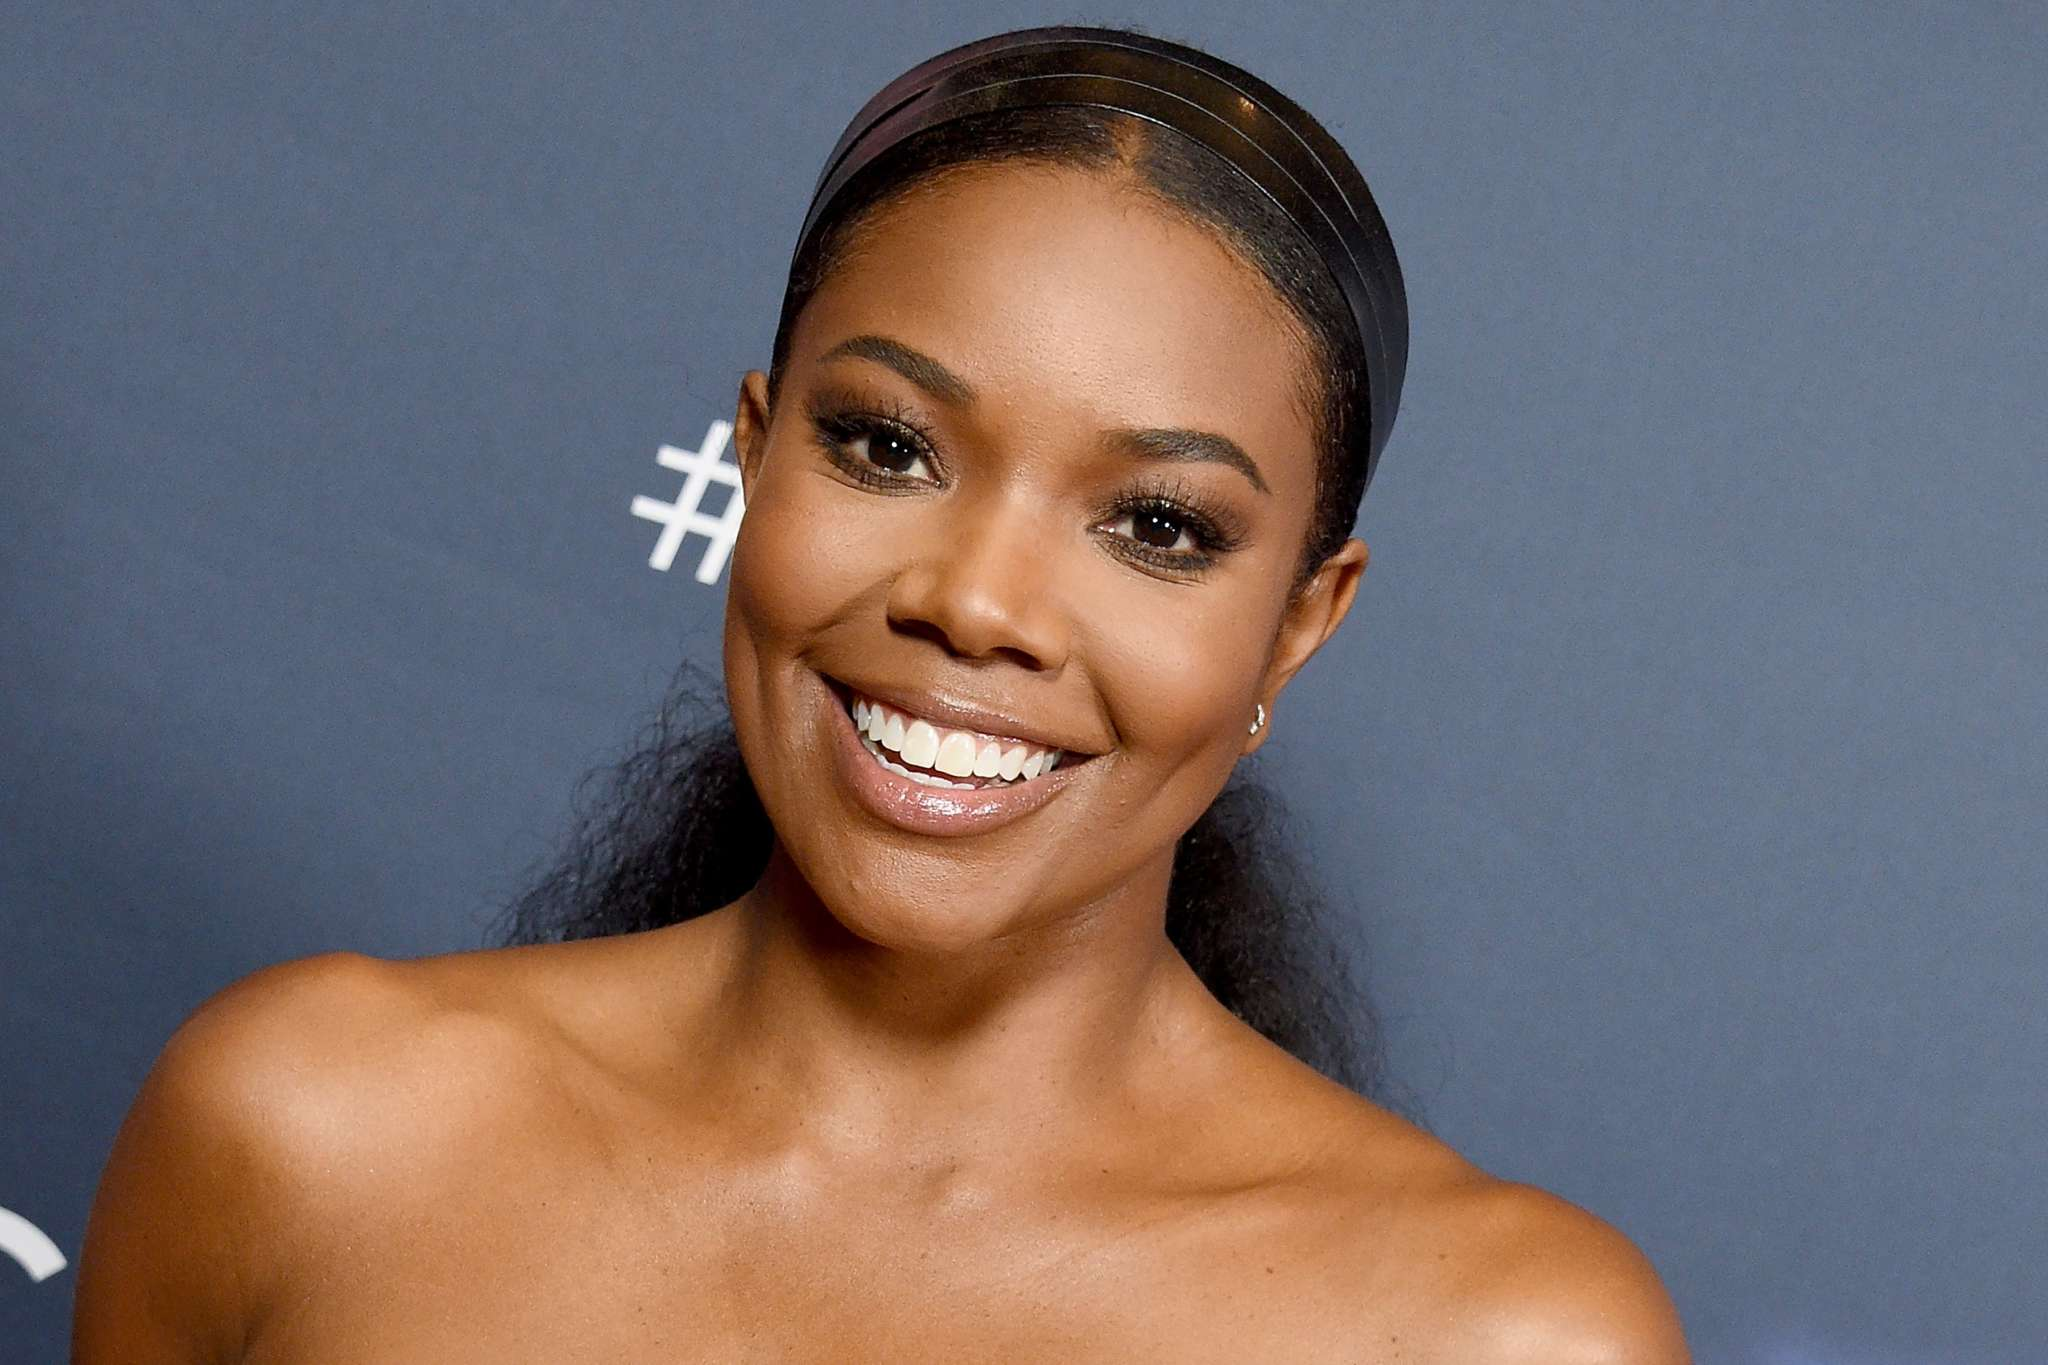 Gabrielle Union Is Glowing In These Photos She Recently Shared